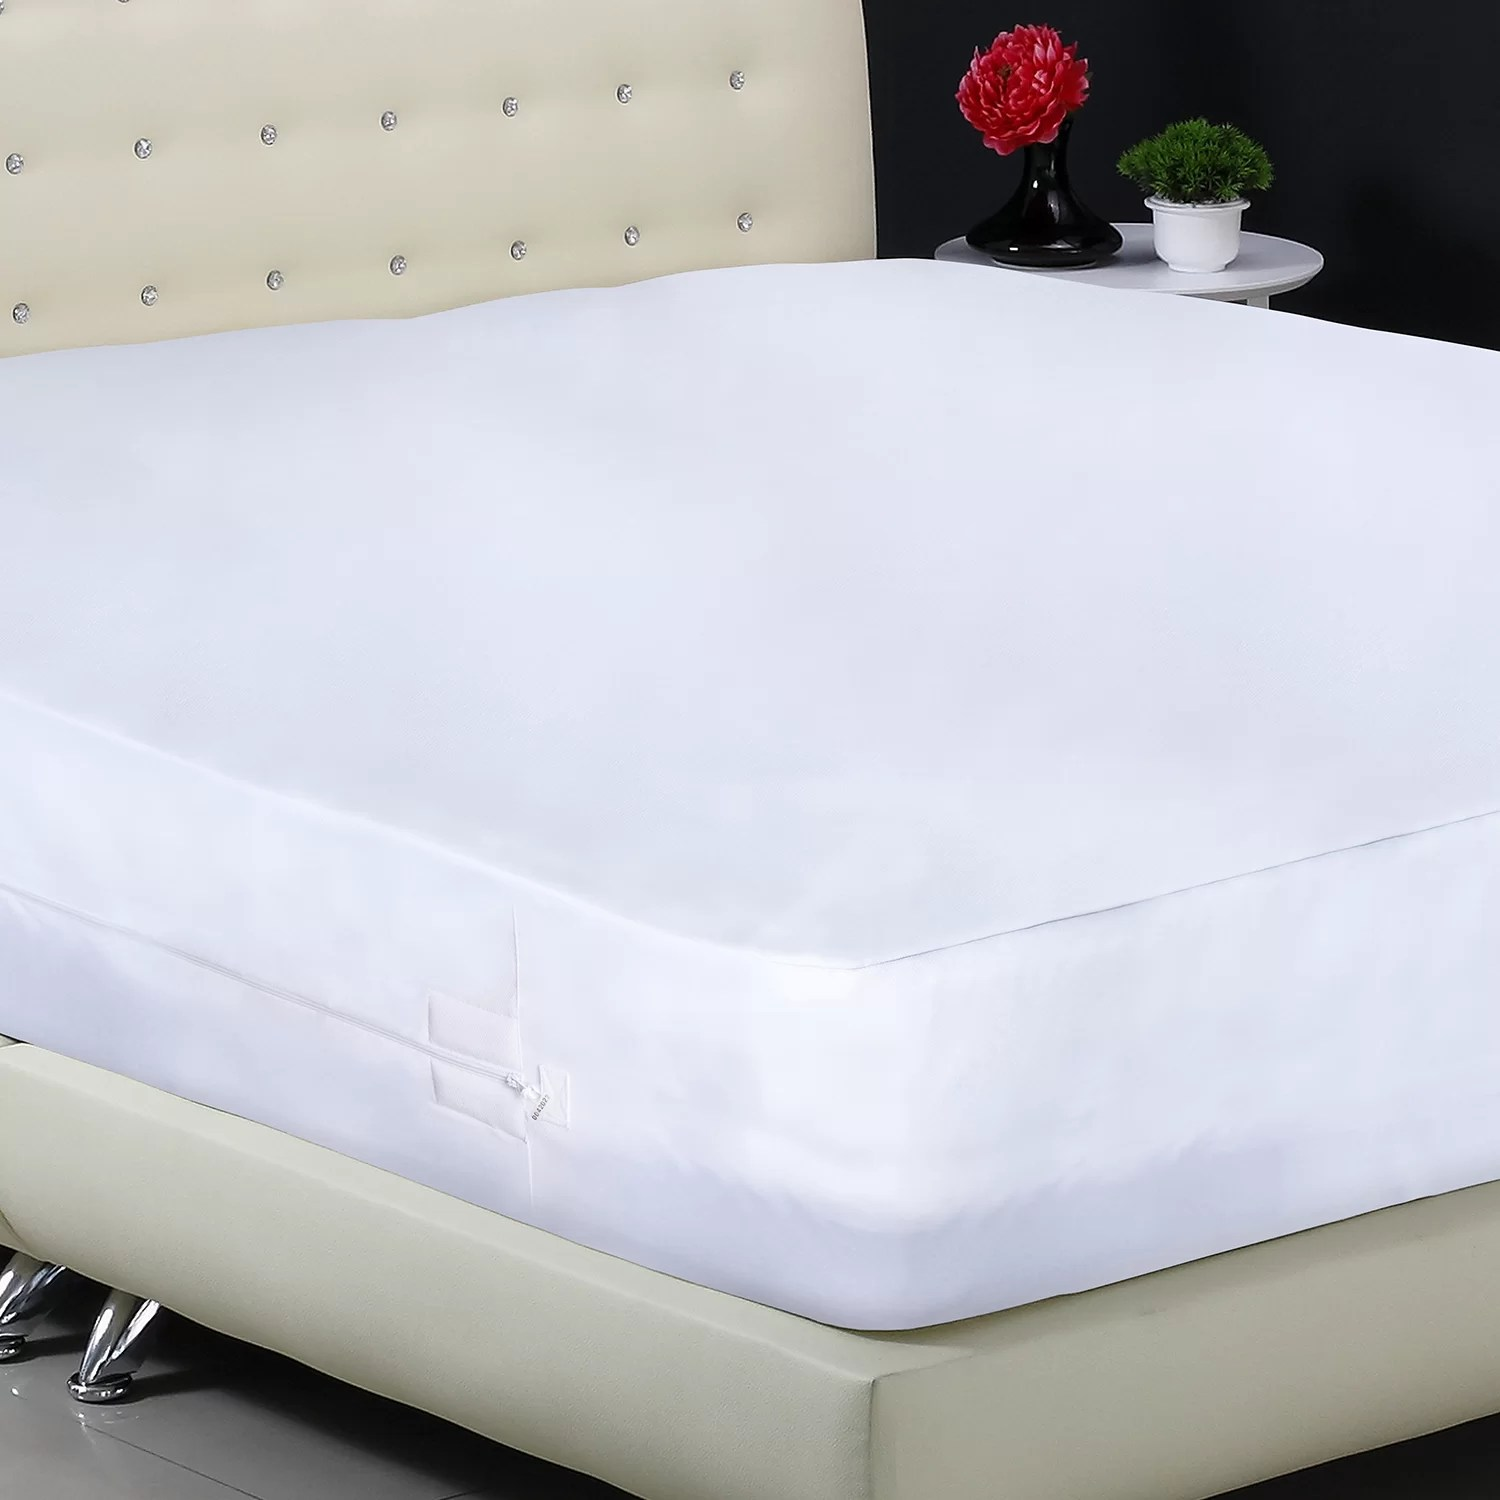 Bed Bug Proof Cover Aller Zip Smooth Anti Allergy And Bed Bug Proof Mattress Protector